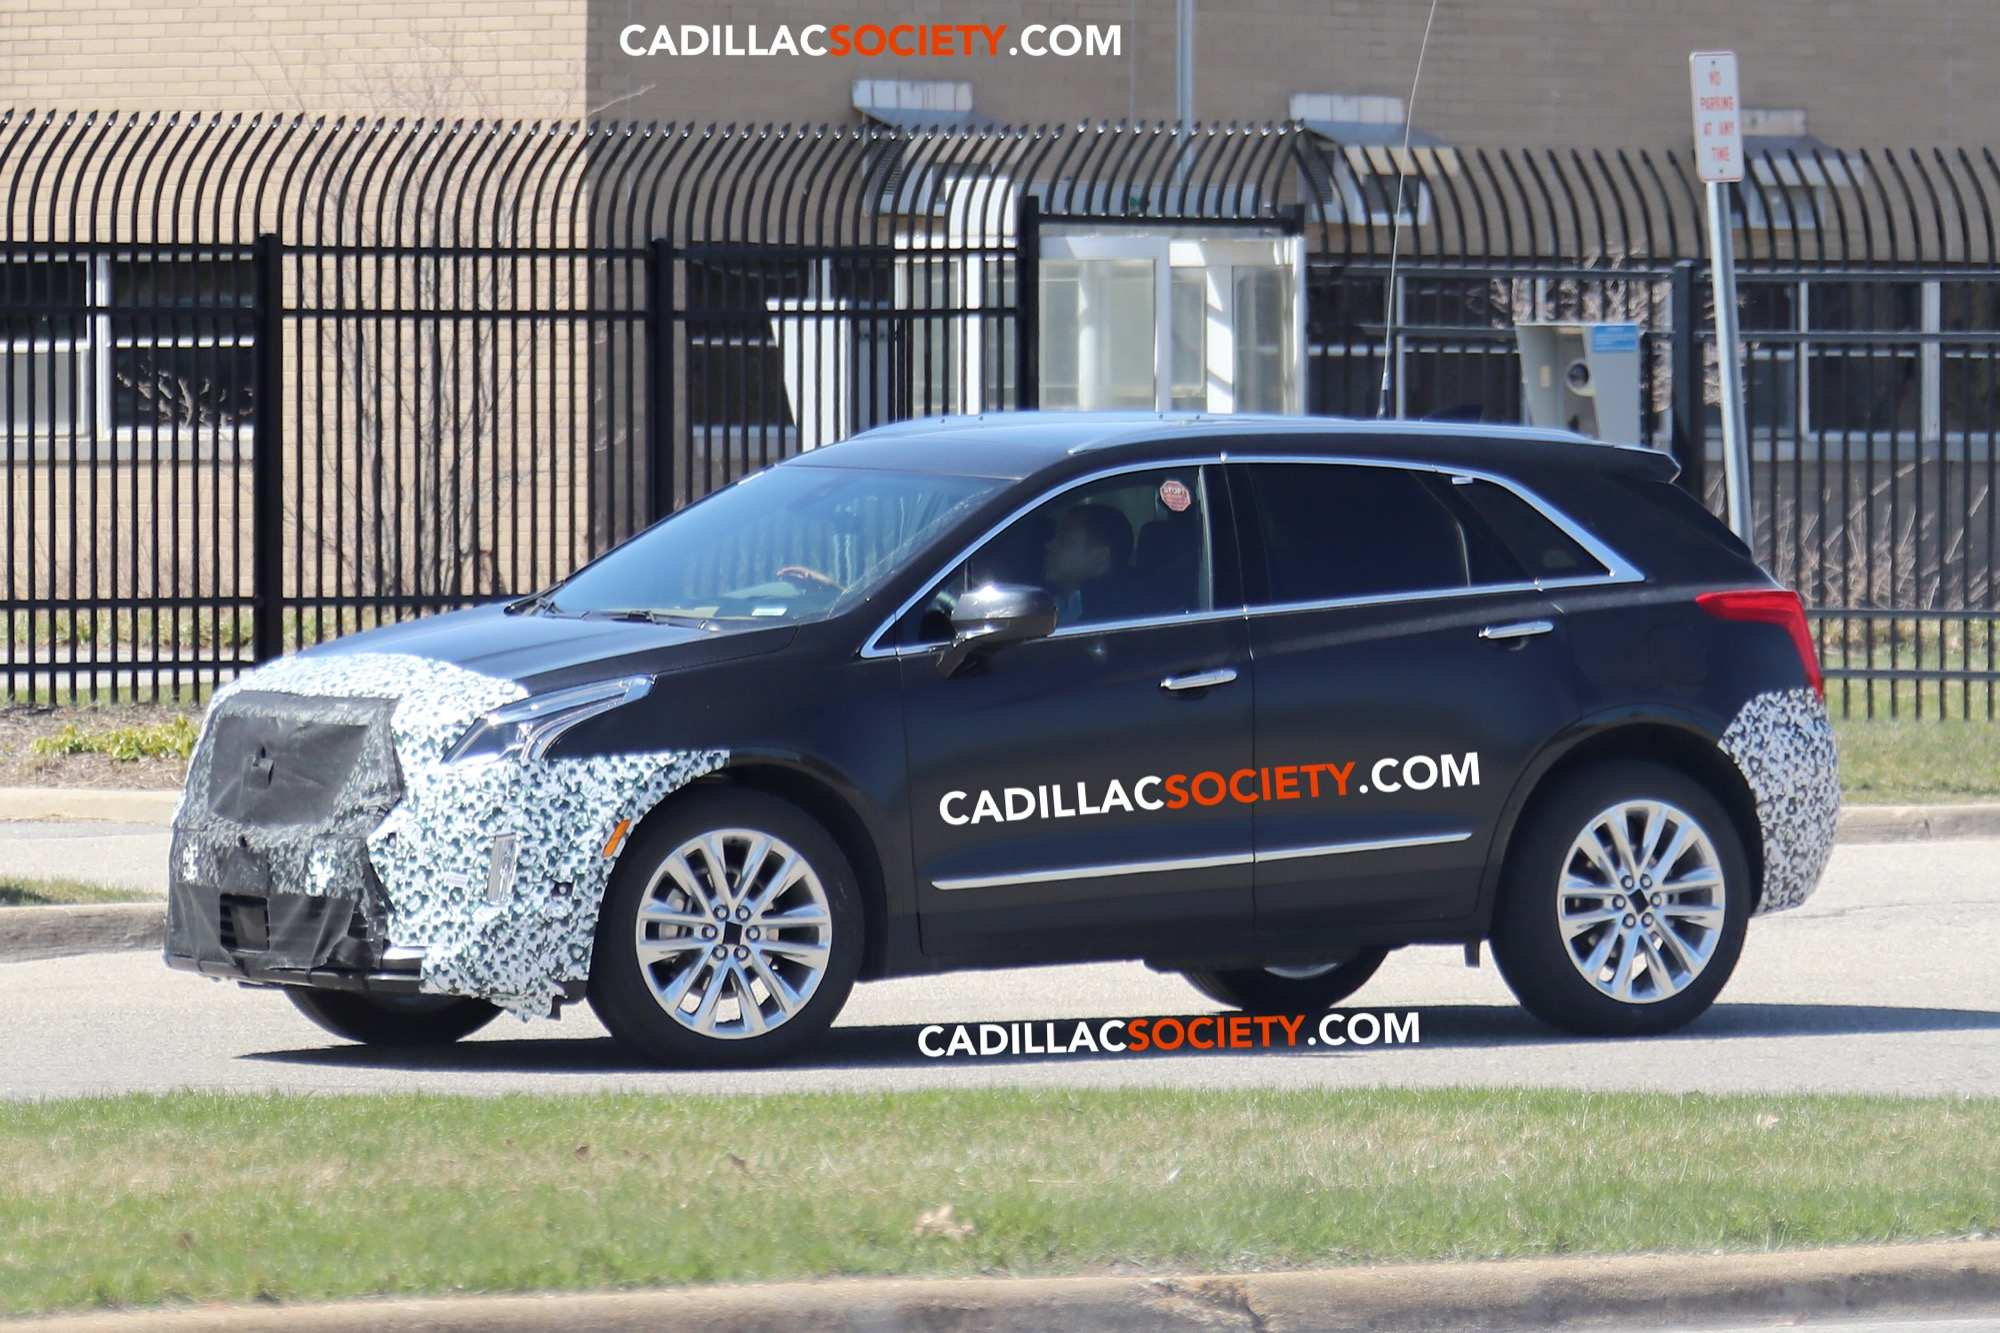 63 Gallery of 2019 Spy Shots Cadillac Xt5 Release with 2019 Spy Shots Cadillac Xt5